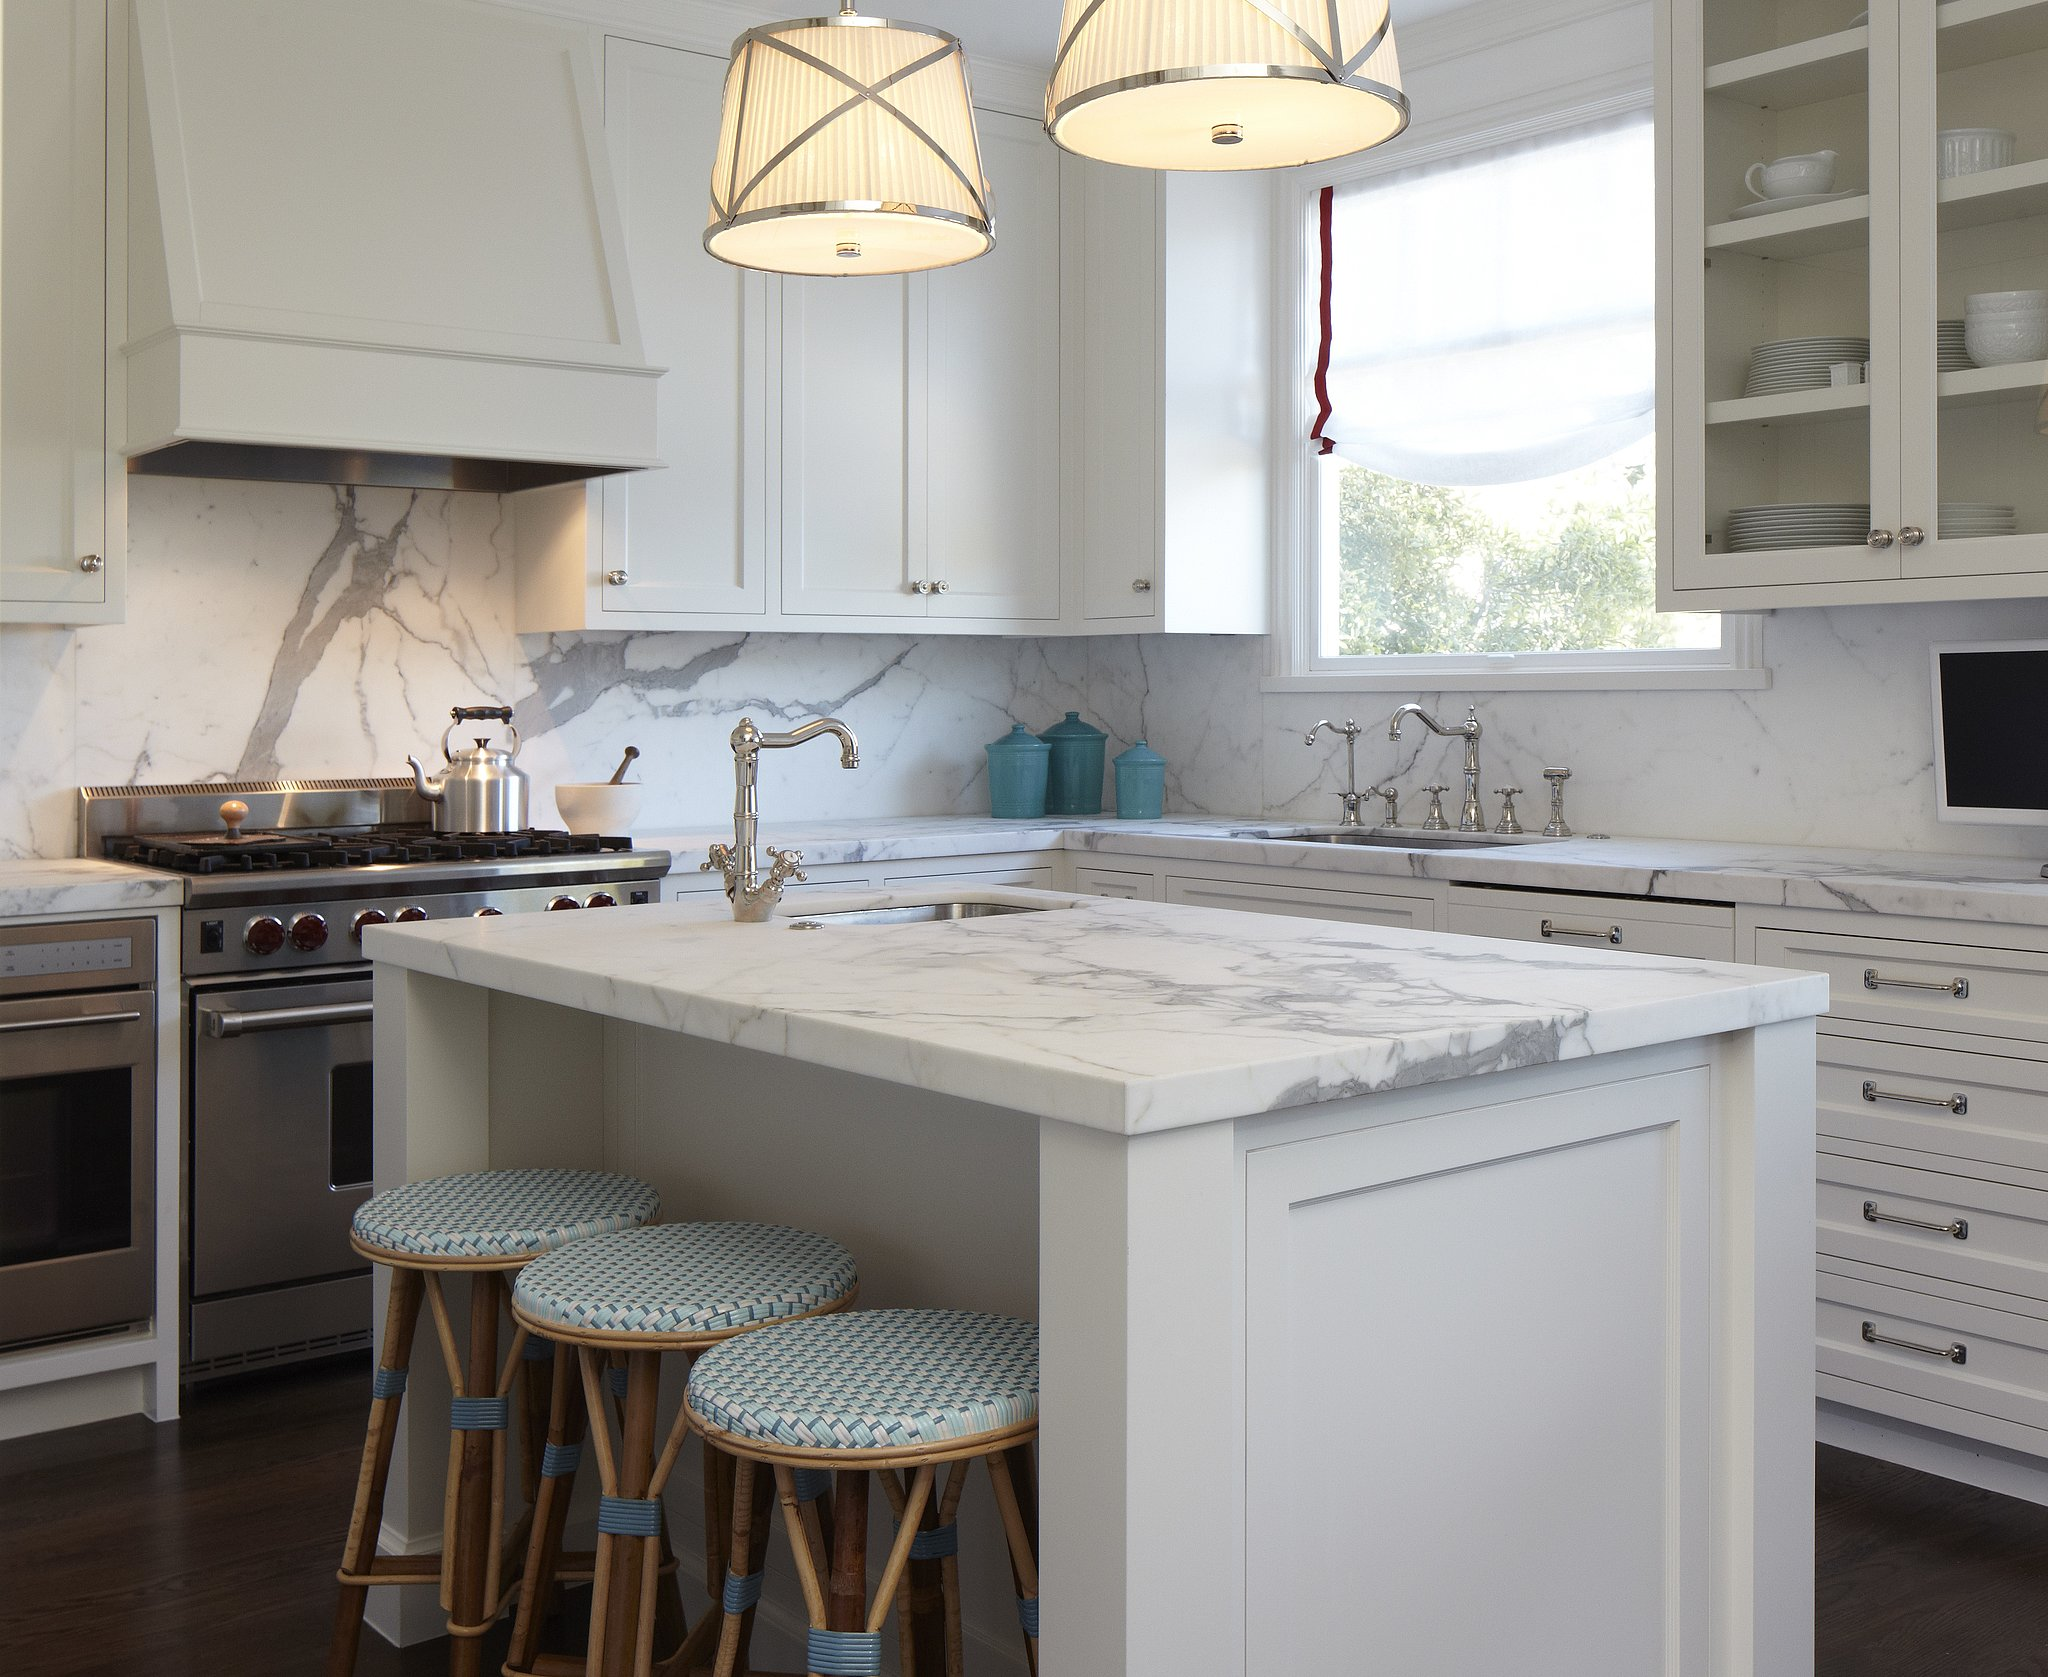 A Honed Marble Island Provides Additional Work Surface And